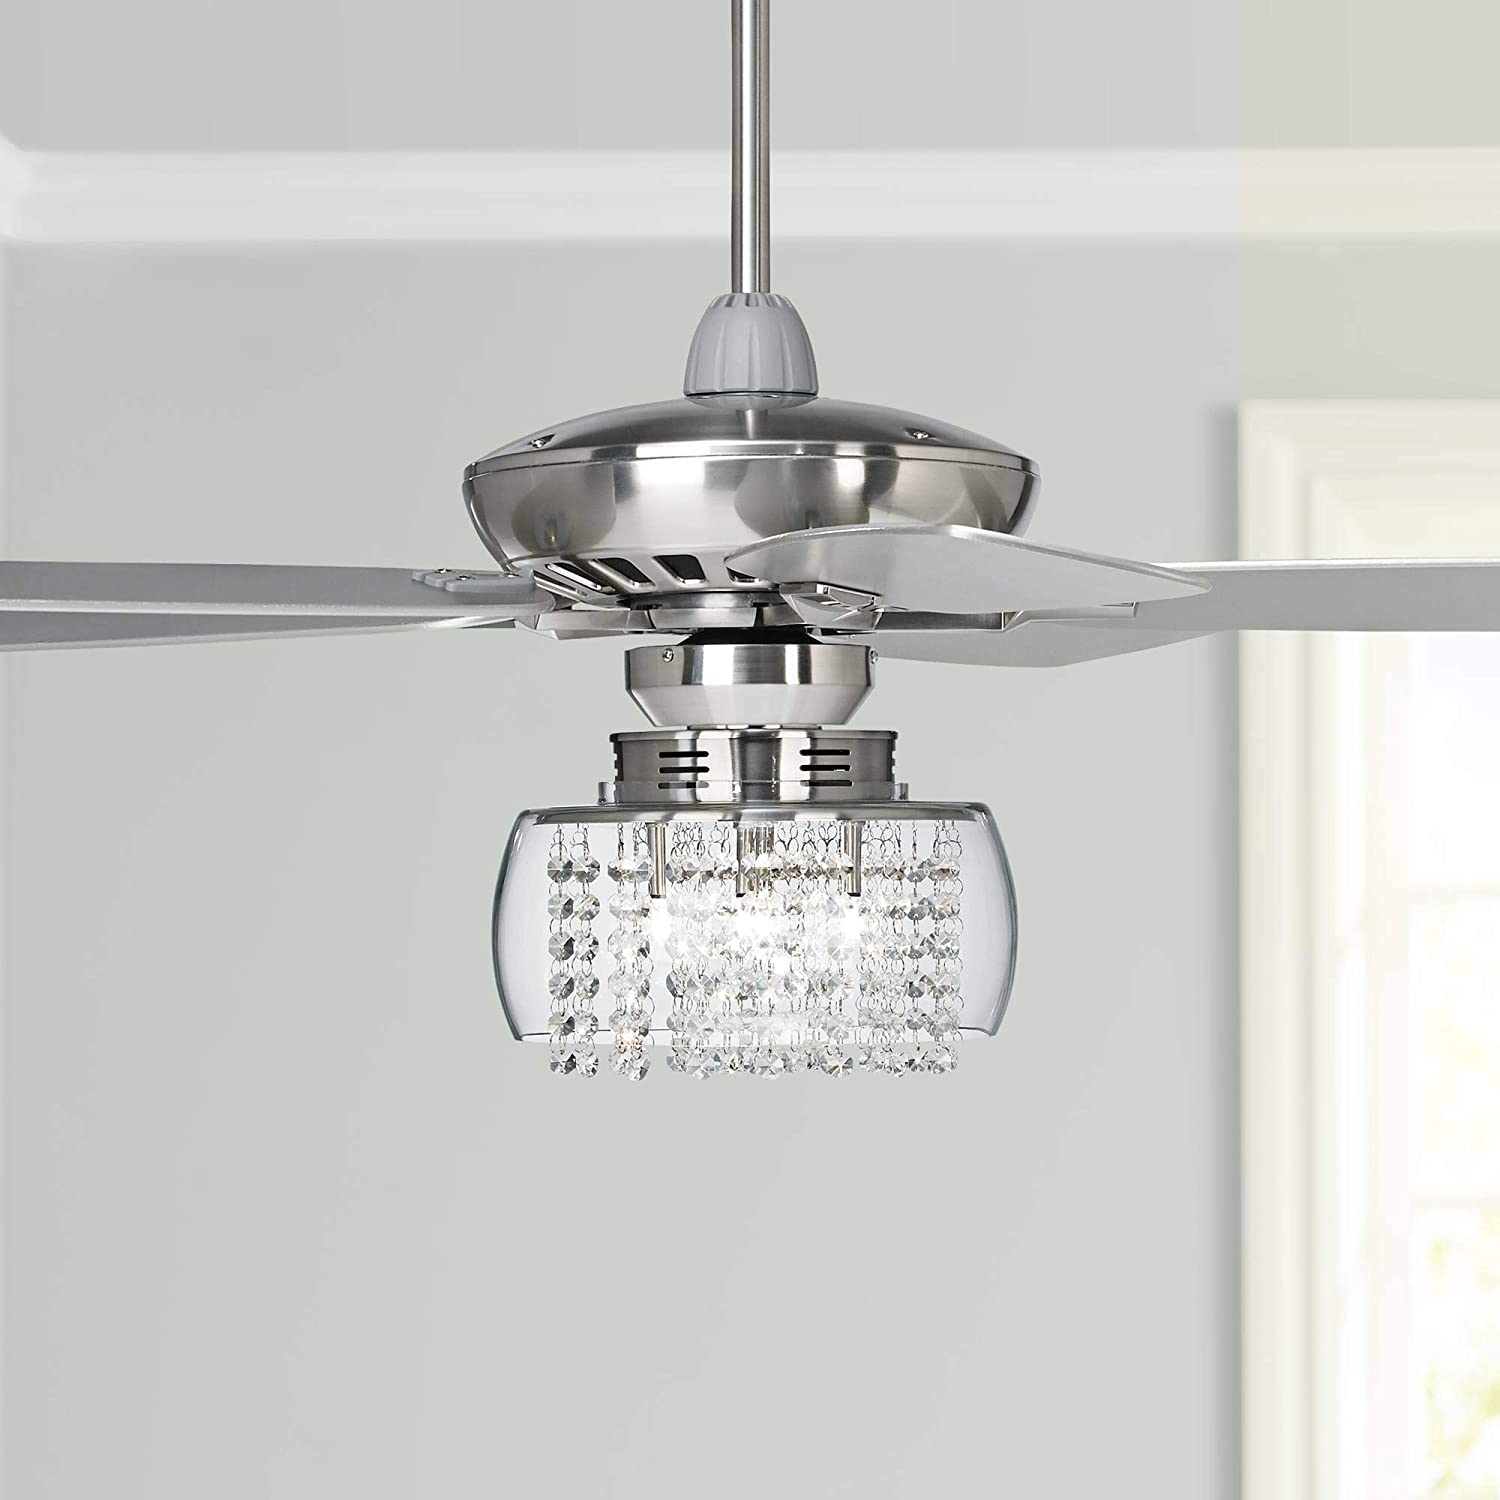 52 Journey Modern Ceiling Fan With Light Led Dimmable Remote Control Brushed Nickel Silver Blades Glass Drum Chrome Crystal For Living Room Kitchen Bedroom Family Dining Casa Vieja